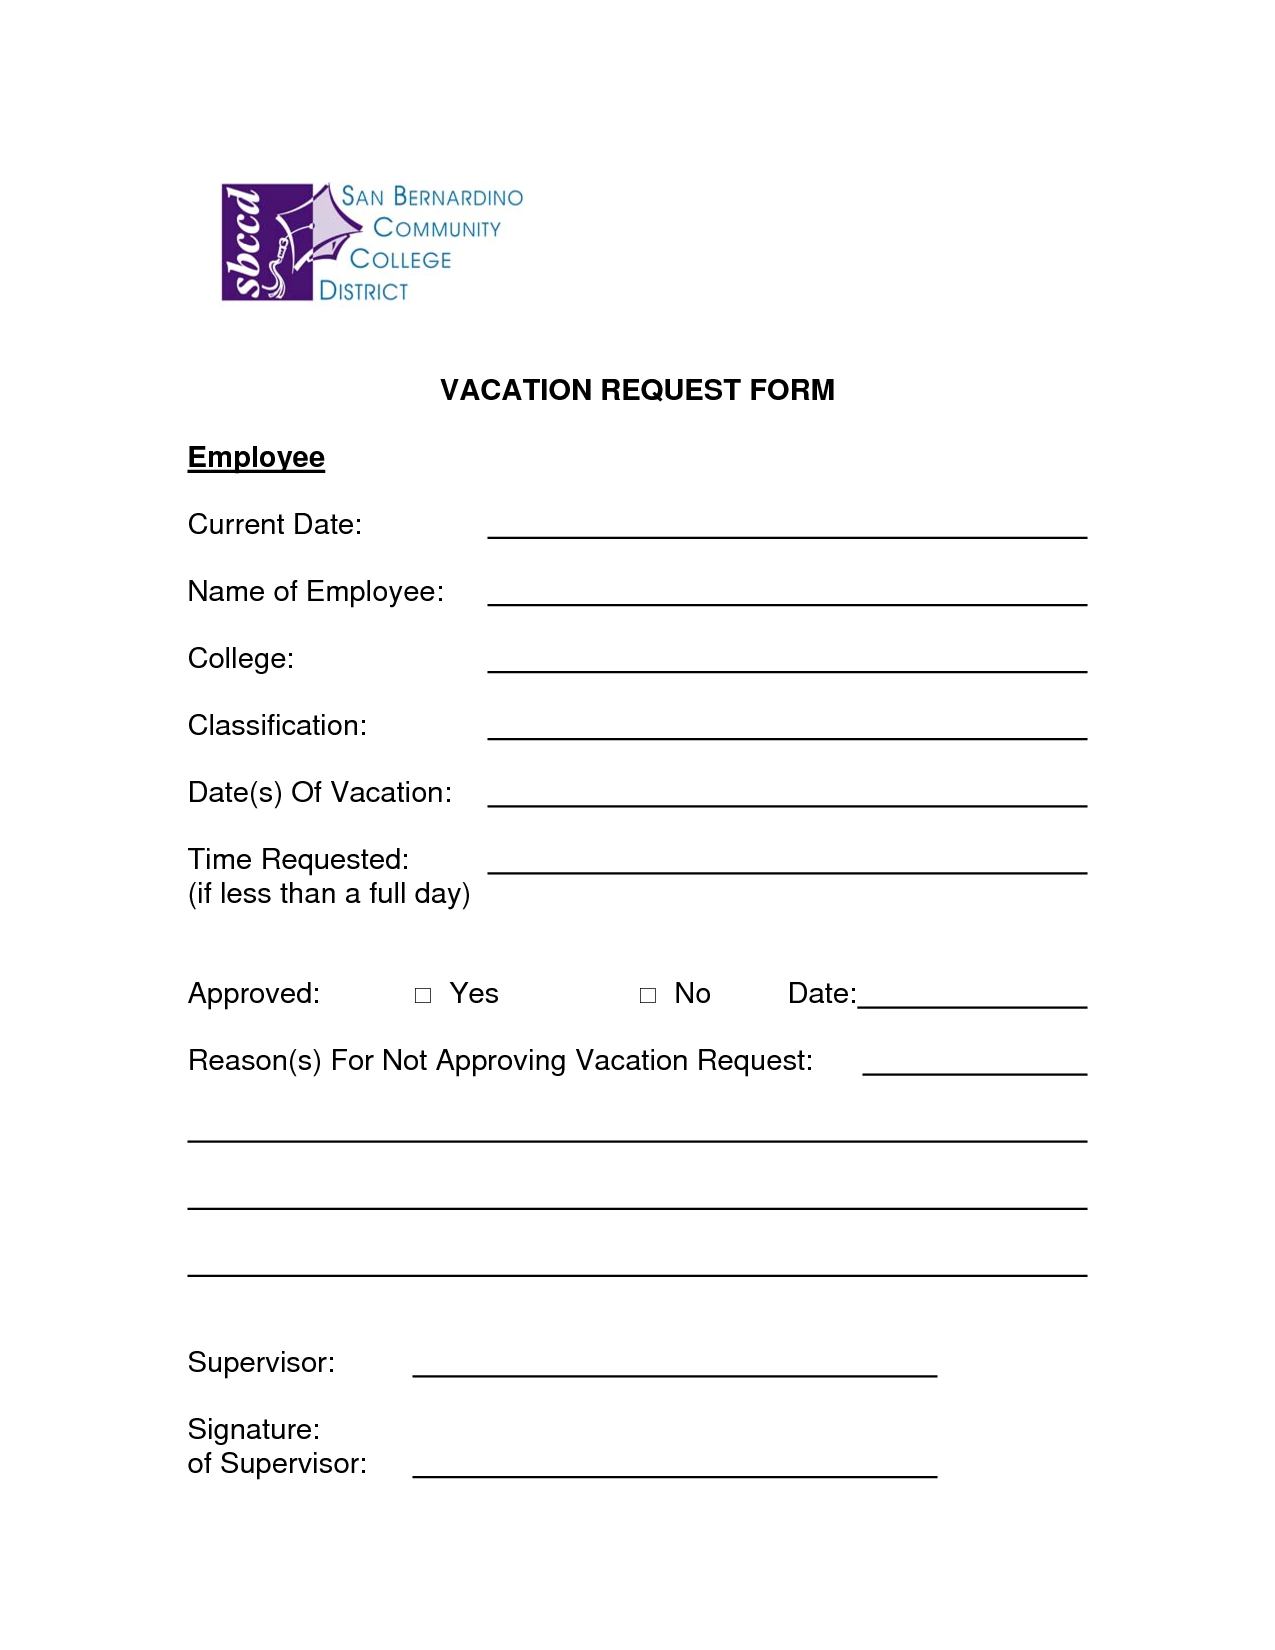 Vacation Request Form Templates Excel Xlts Letter Free Sample